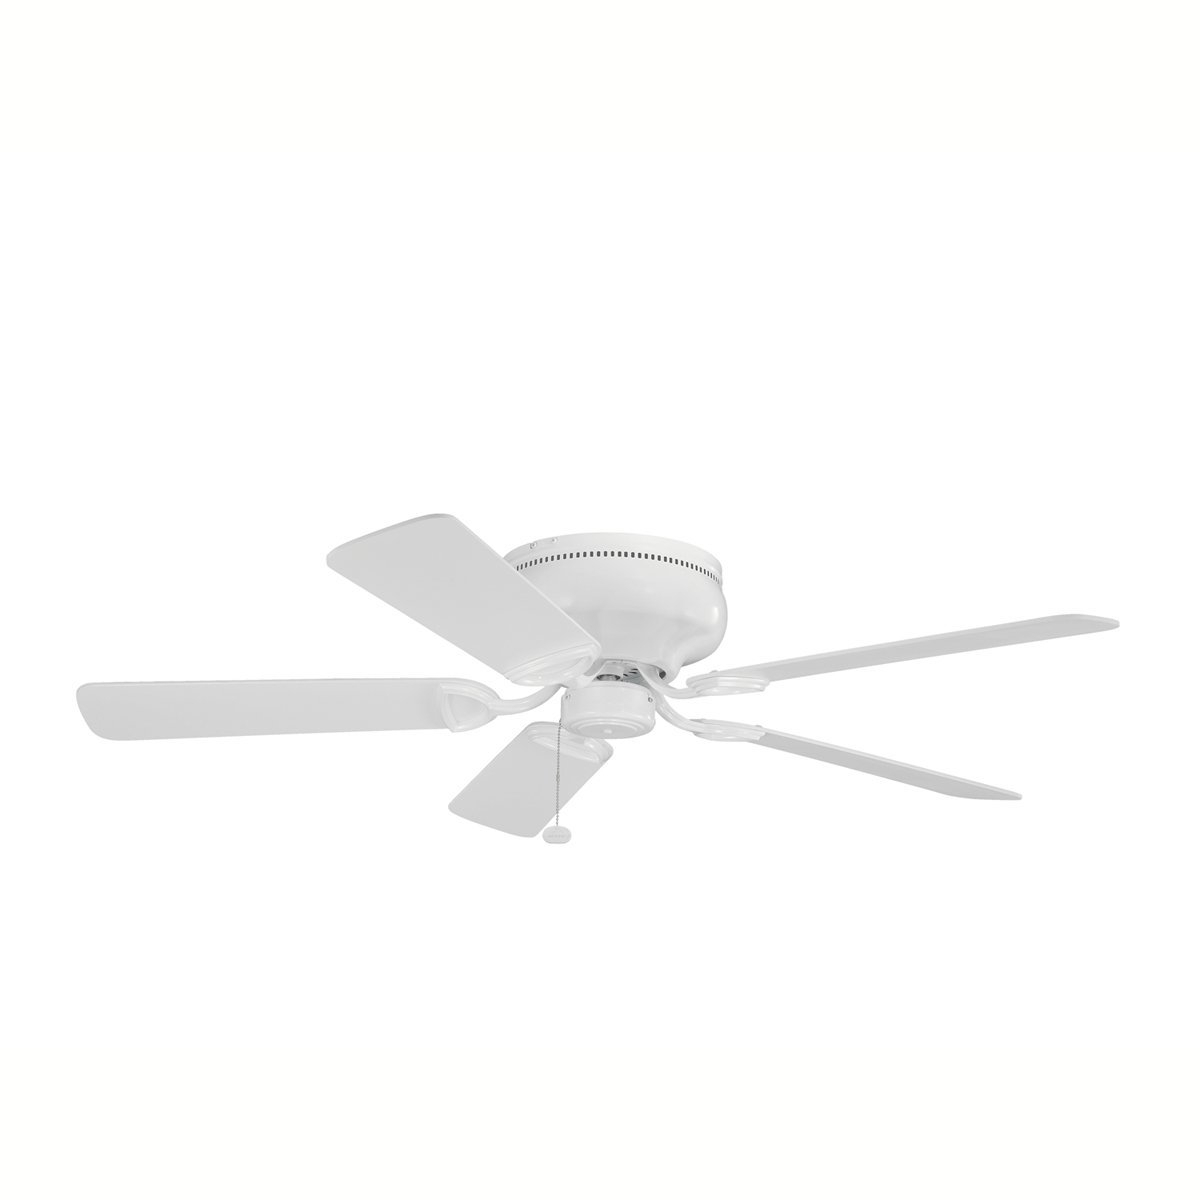 Flush Mount Ceiling Fans Without Lights Big Outdoor Ceiling Fan With For Preferred Outdoor Ceiling Fans Flush Mount With Light (View 8 of 20)